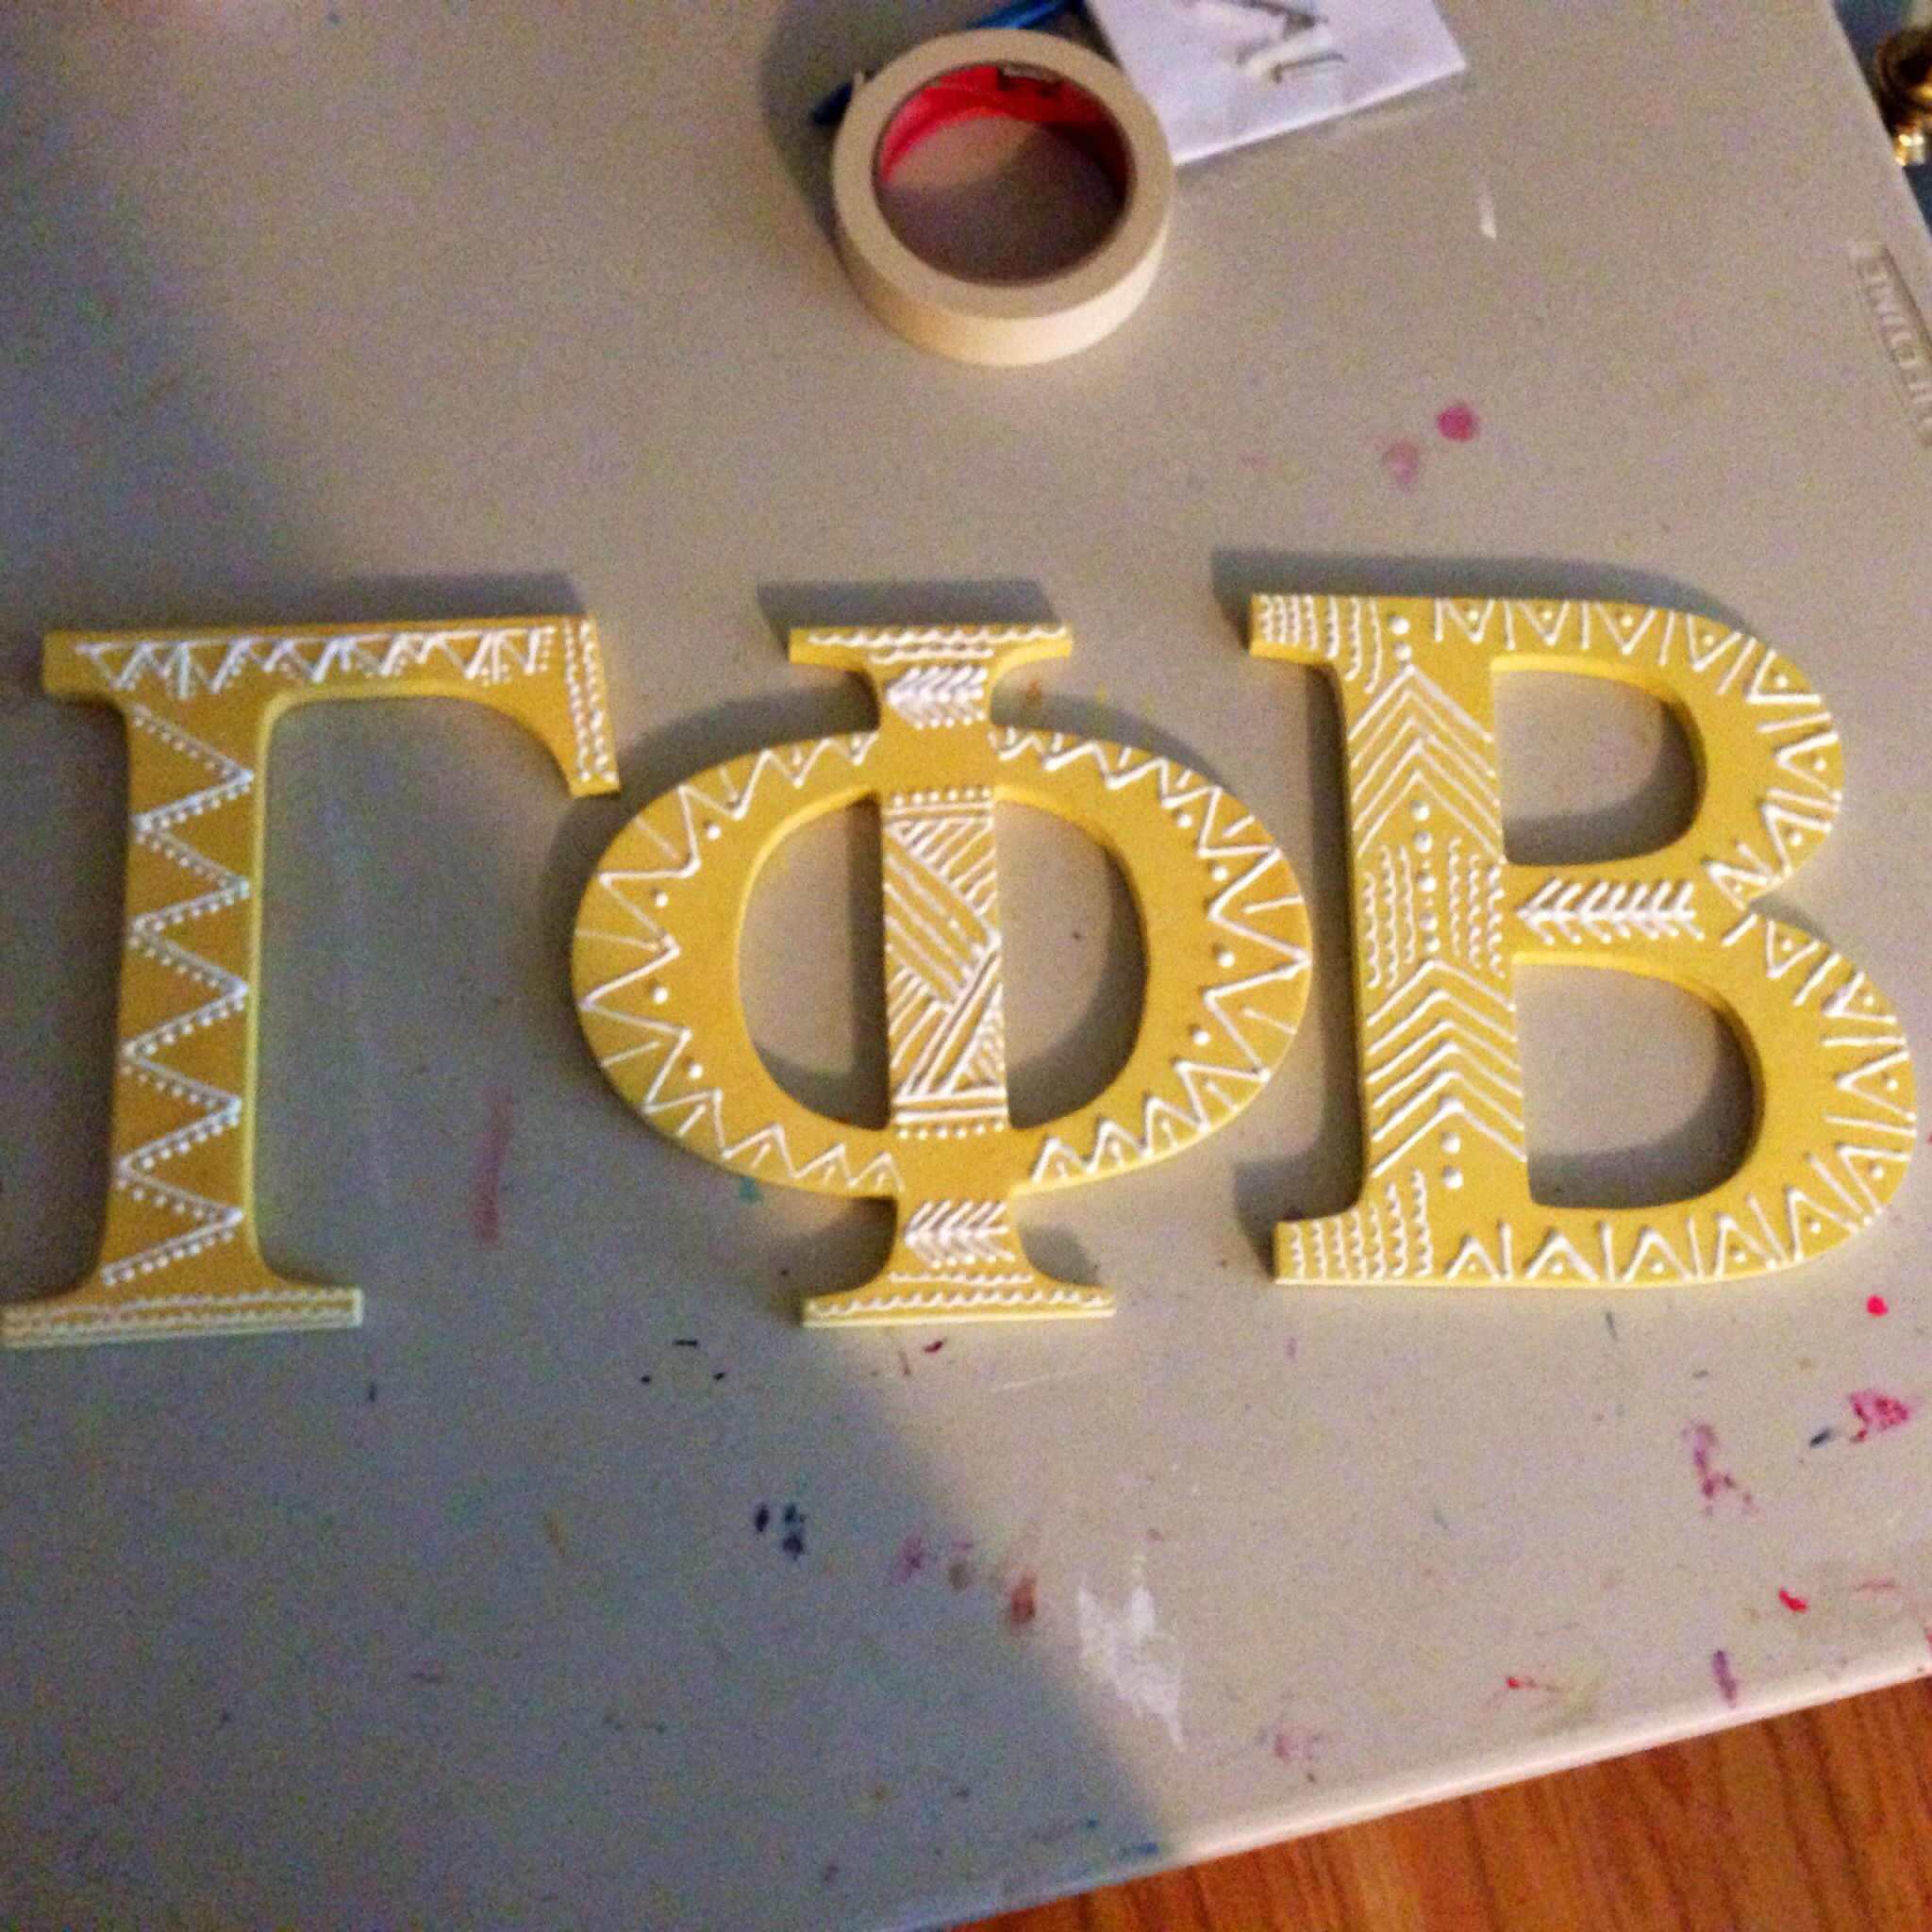 Wooden letters for crafts - Find This Pin And More On Crafts Gamma Phi Beta Wooden Letters